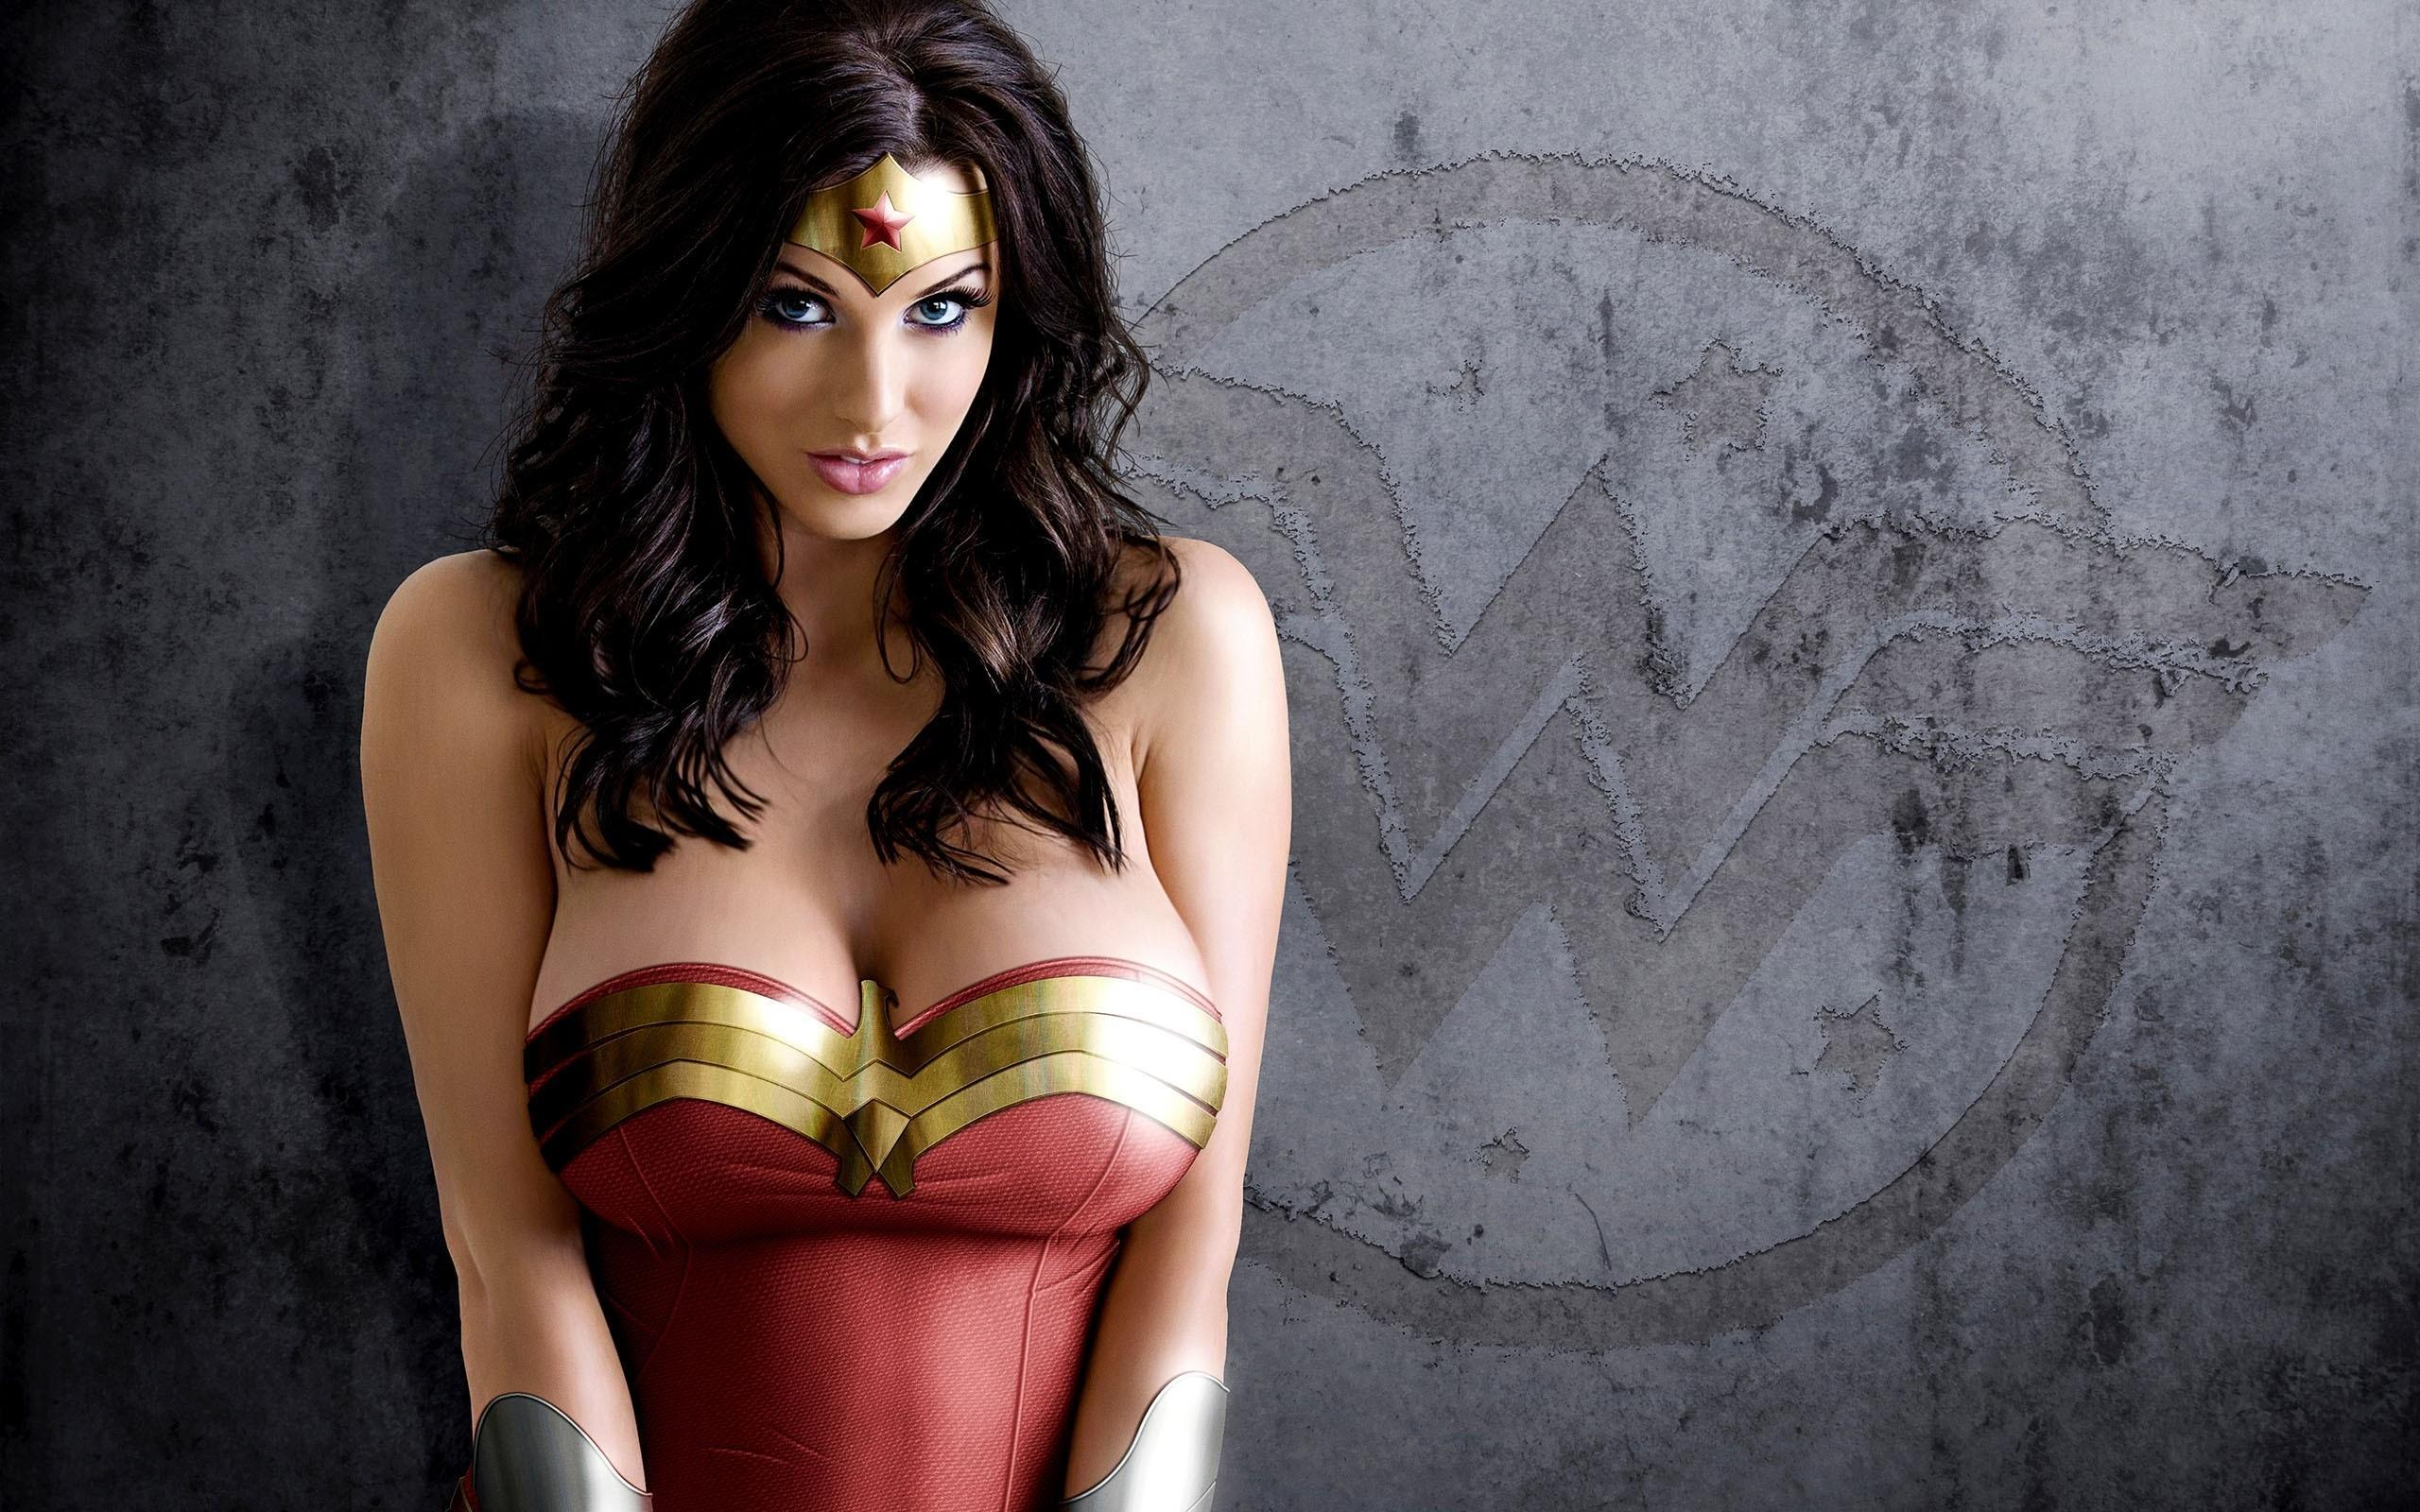 Wonder Woman Wallpaper Images ~ Sdeerwallpaper